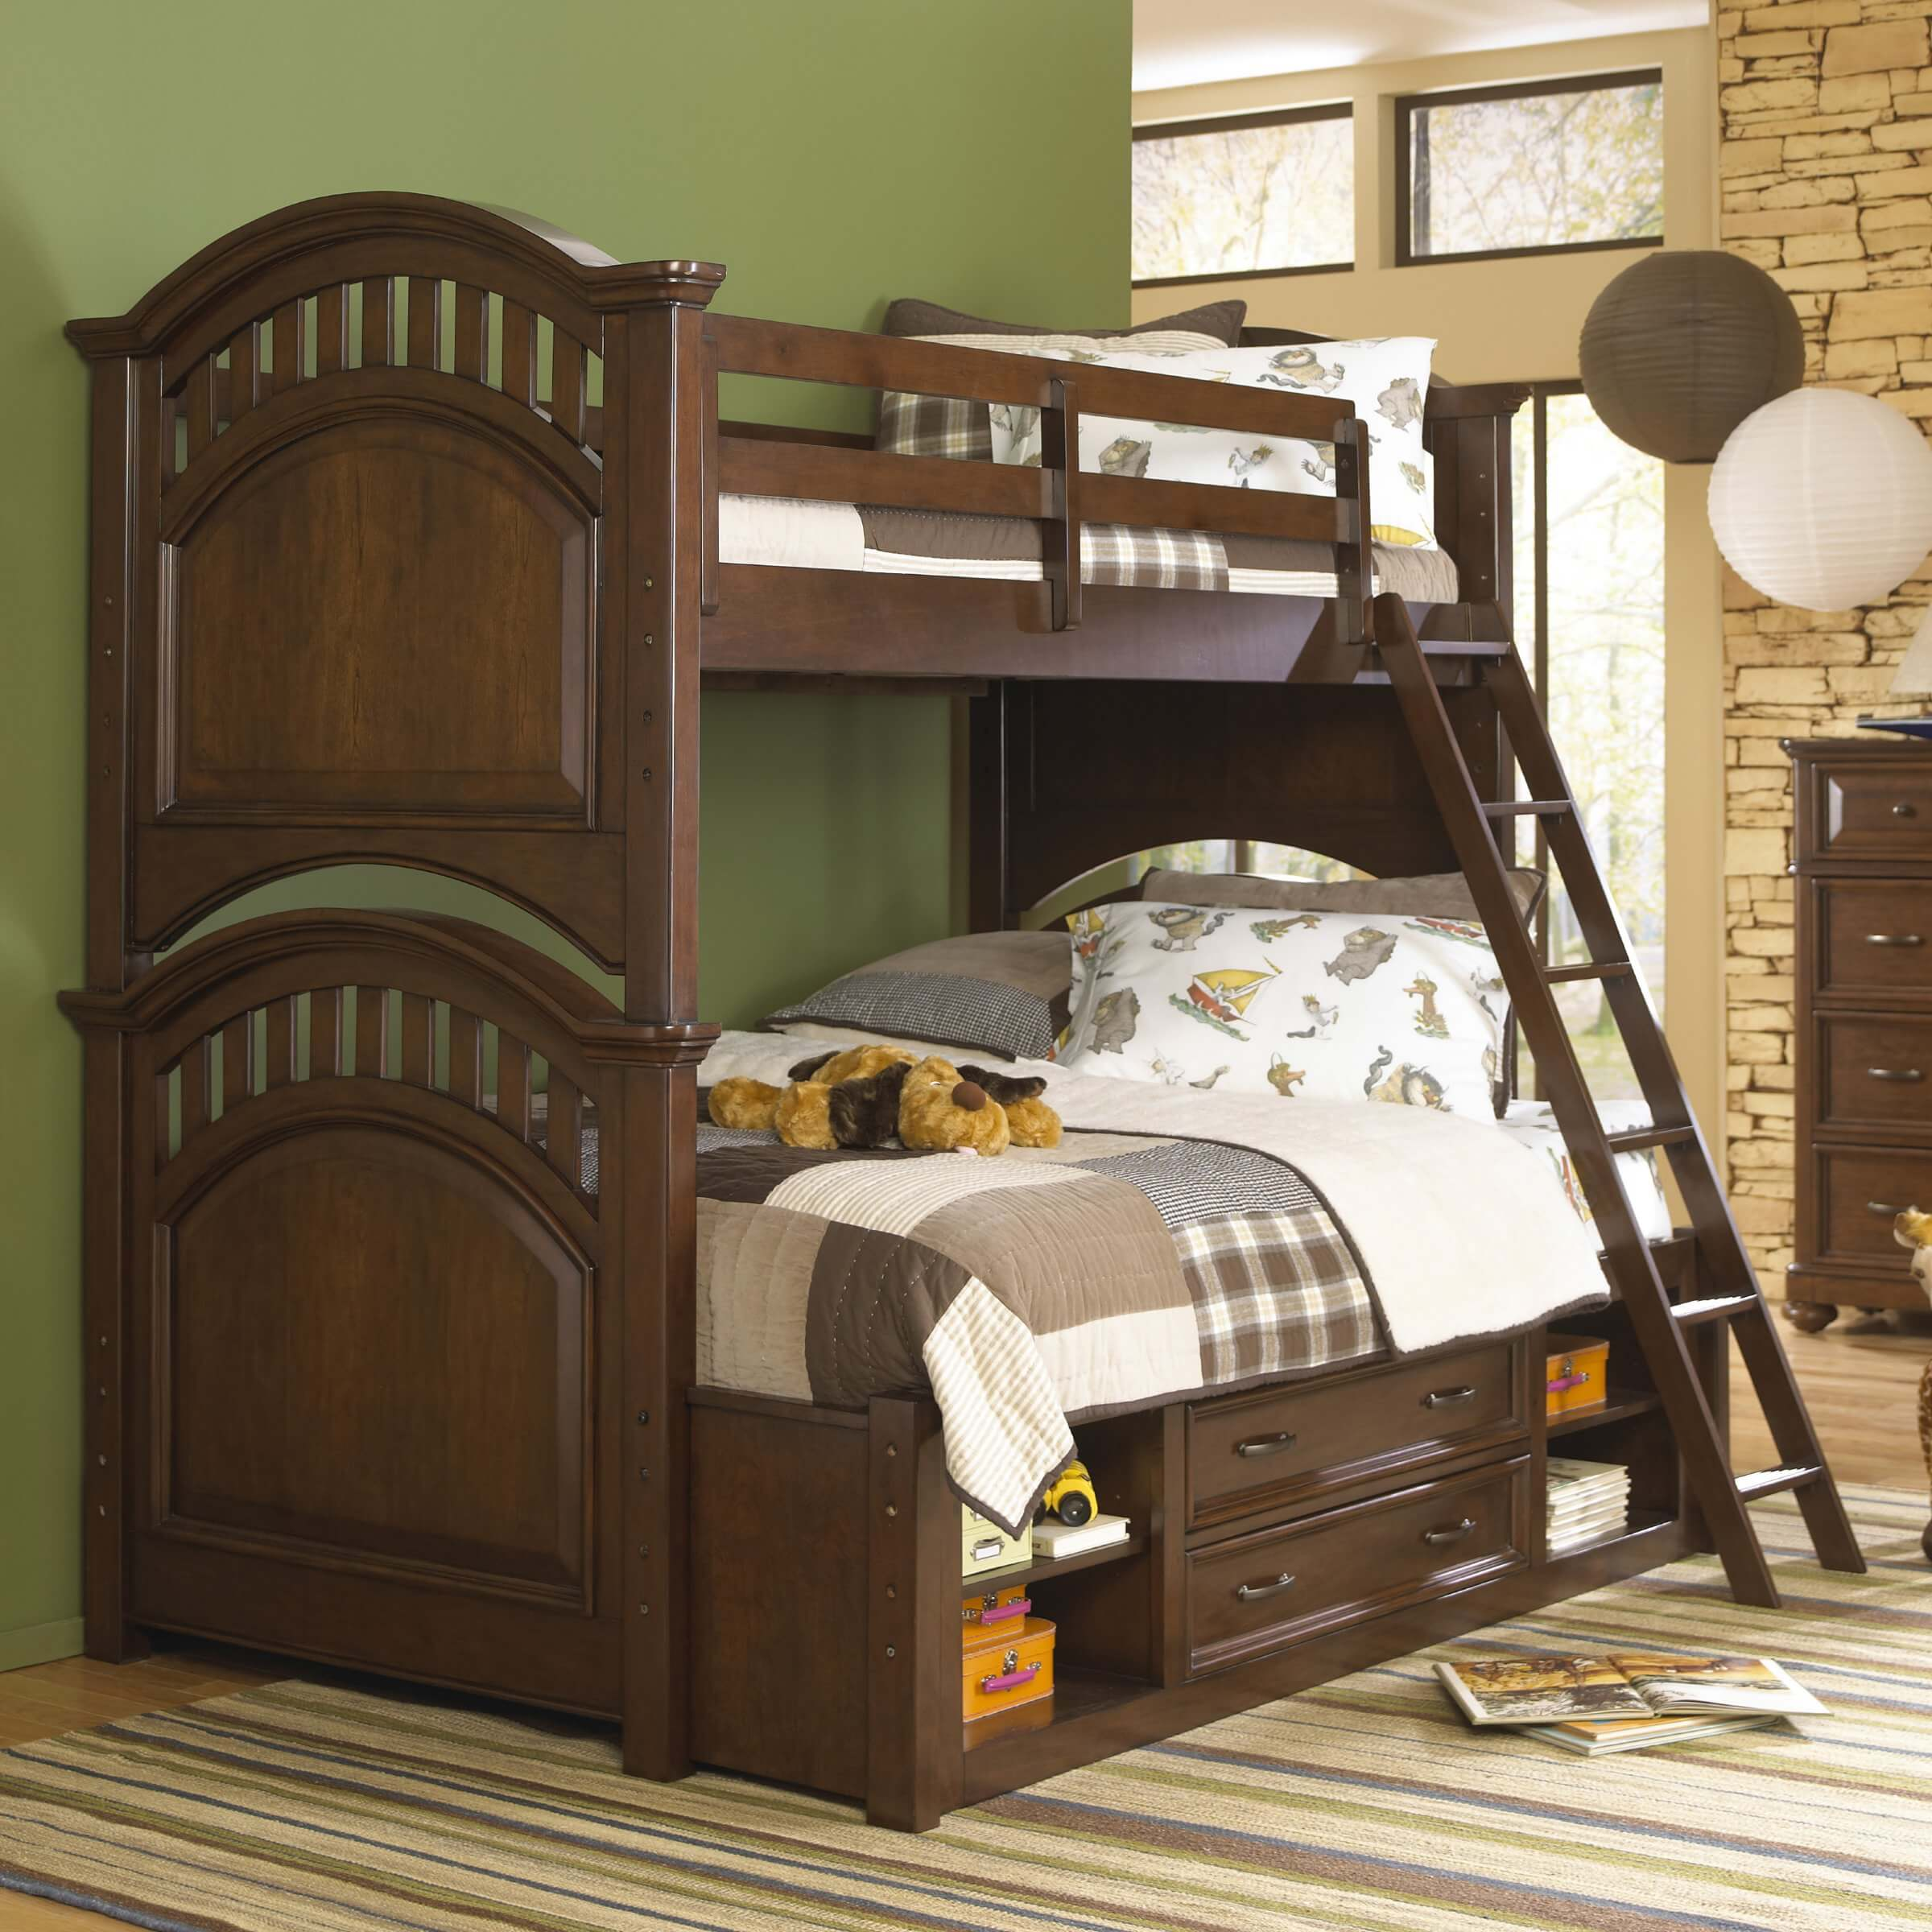 Advantages And Drawbacks Of Strong Wooden Loft Bed With Stairs Cherry Wood Twin over Full Bunk Bed